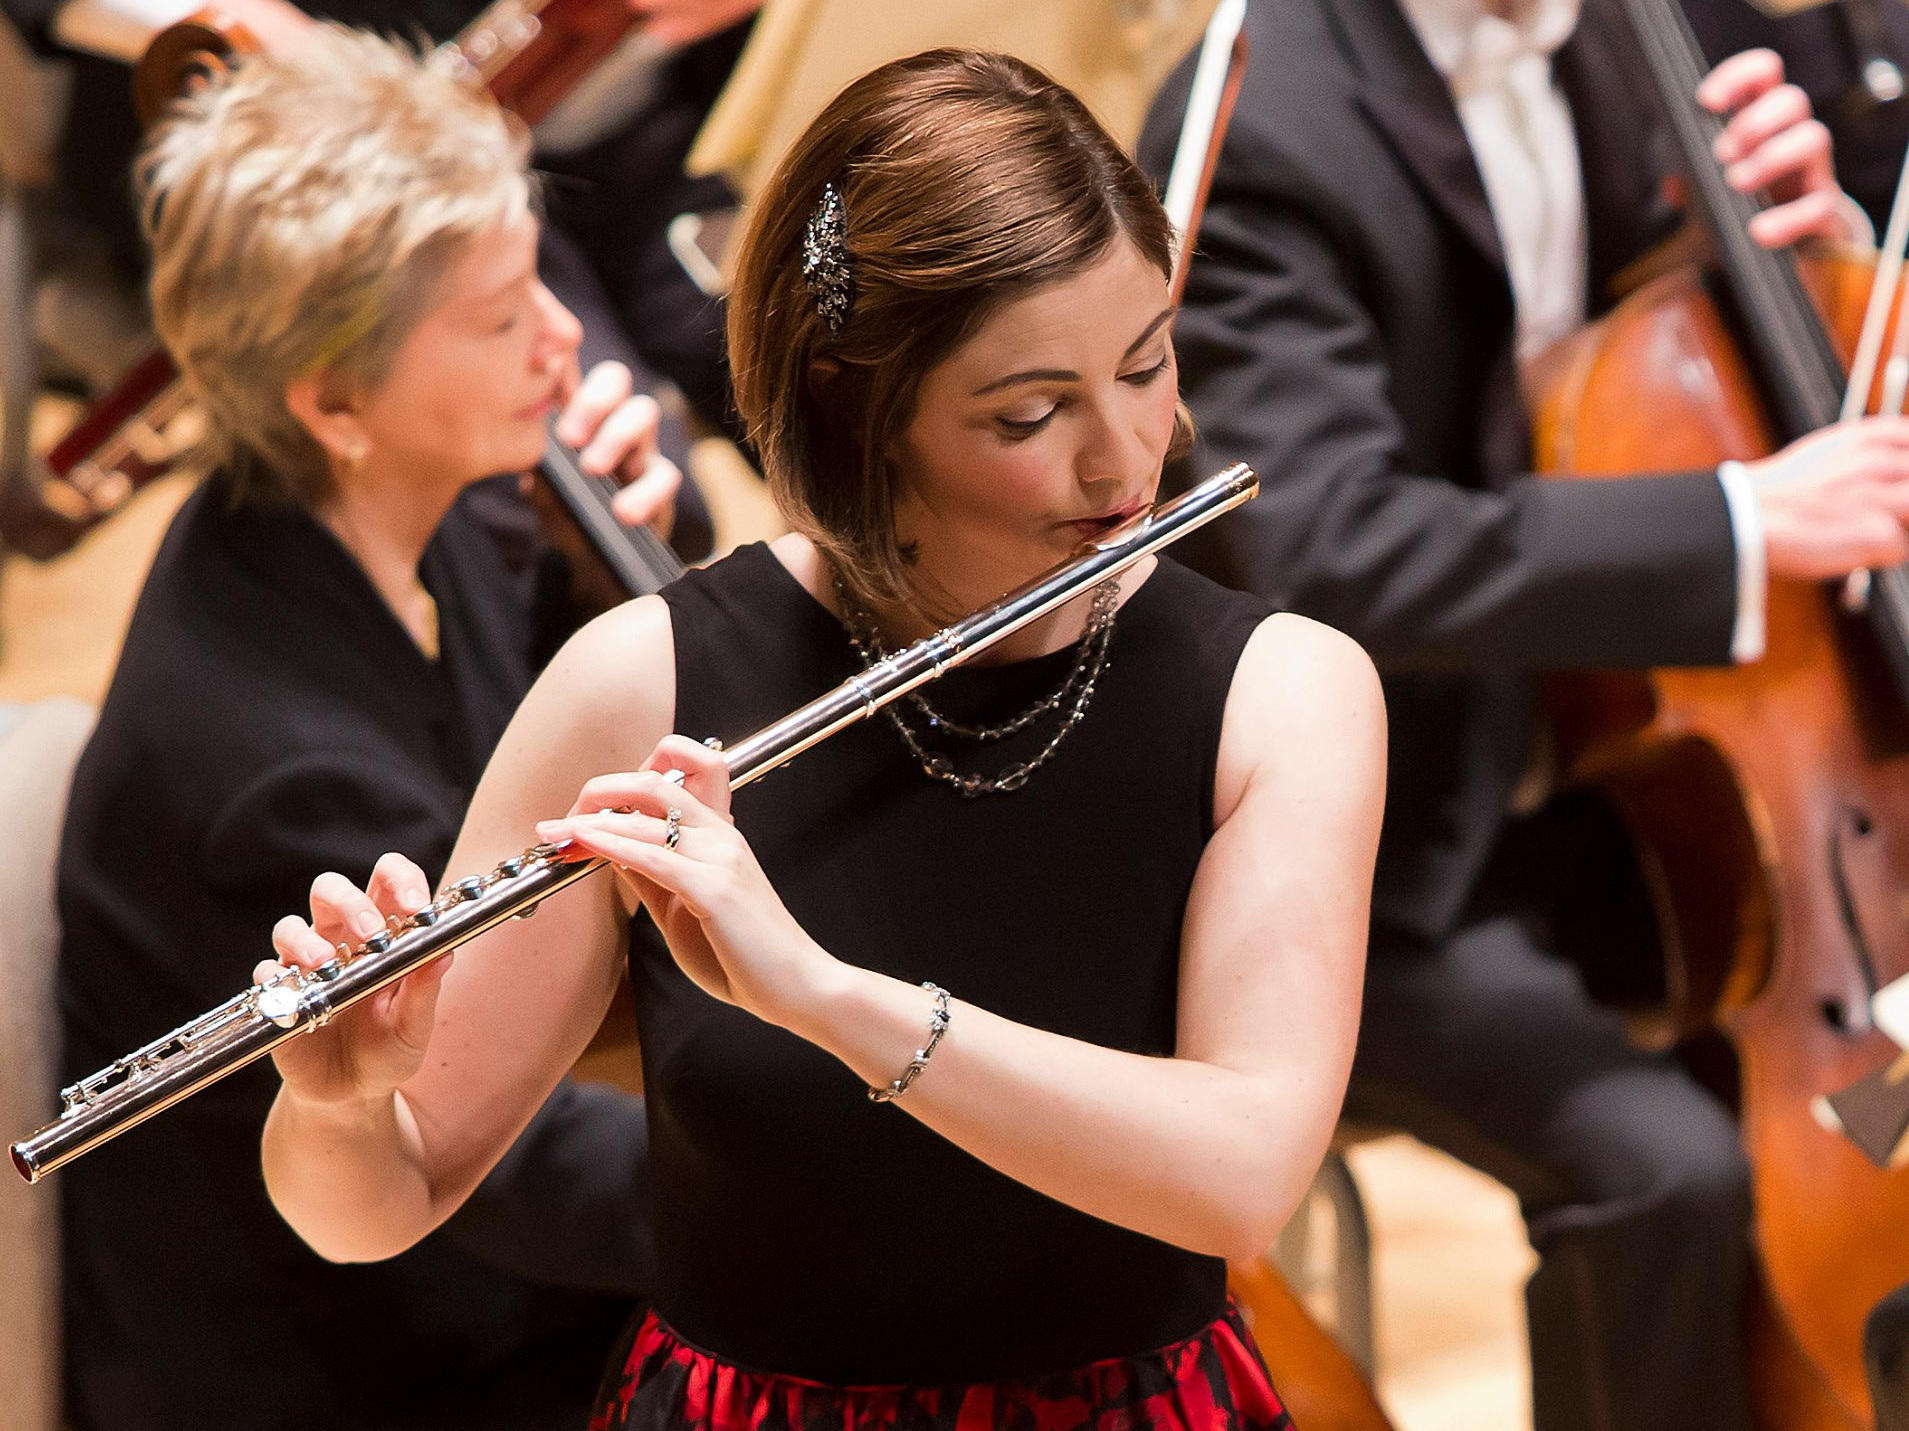 Seeking Pay Equity, Female Flutist Sues Boston Symphony